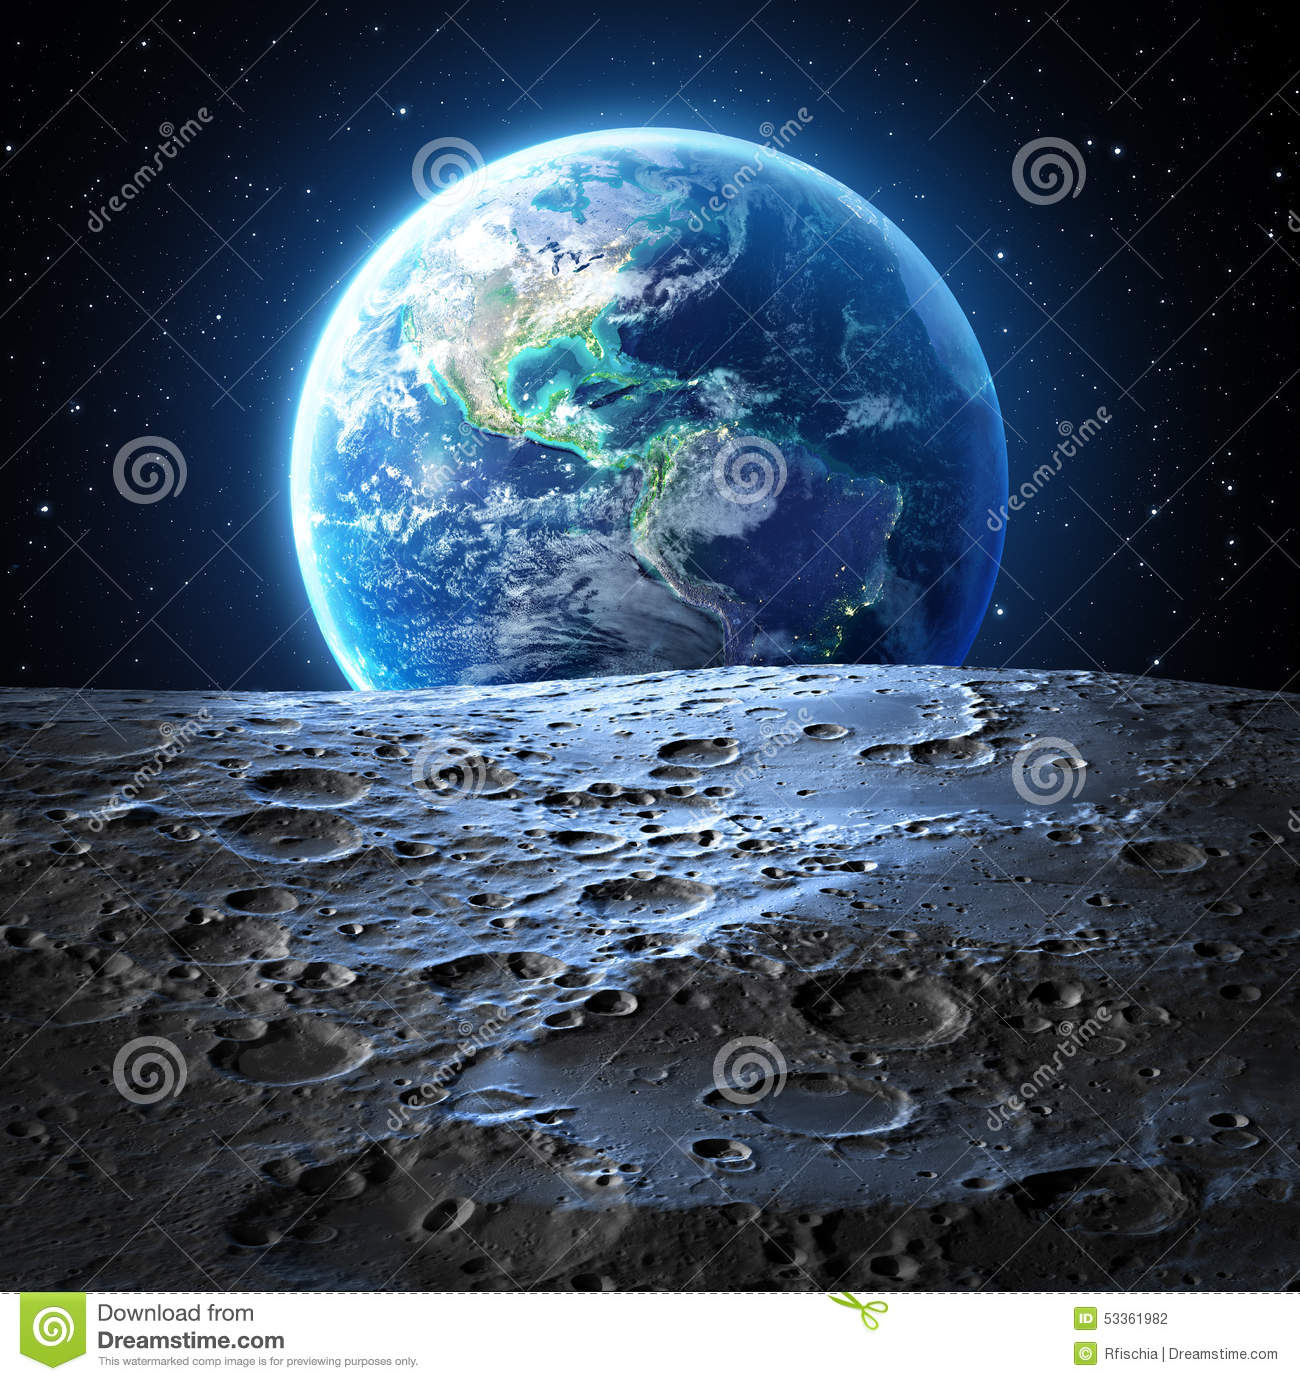 blue earth view from moon surface stock photo image of moonlight light 53361982. Black Bedroom Furniture Sets. Home Design Ideas